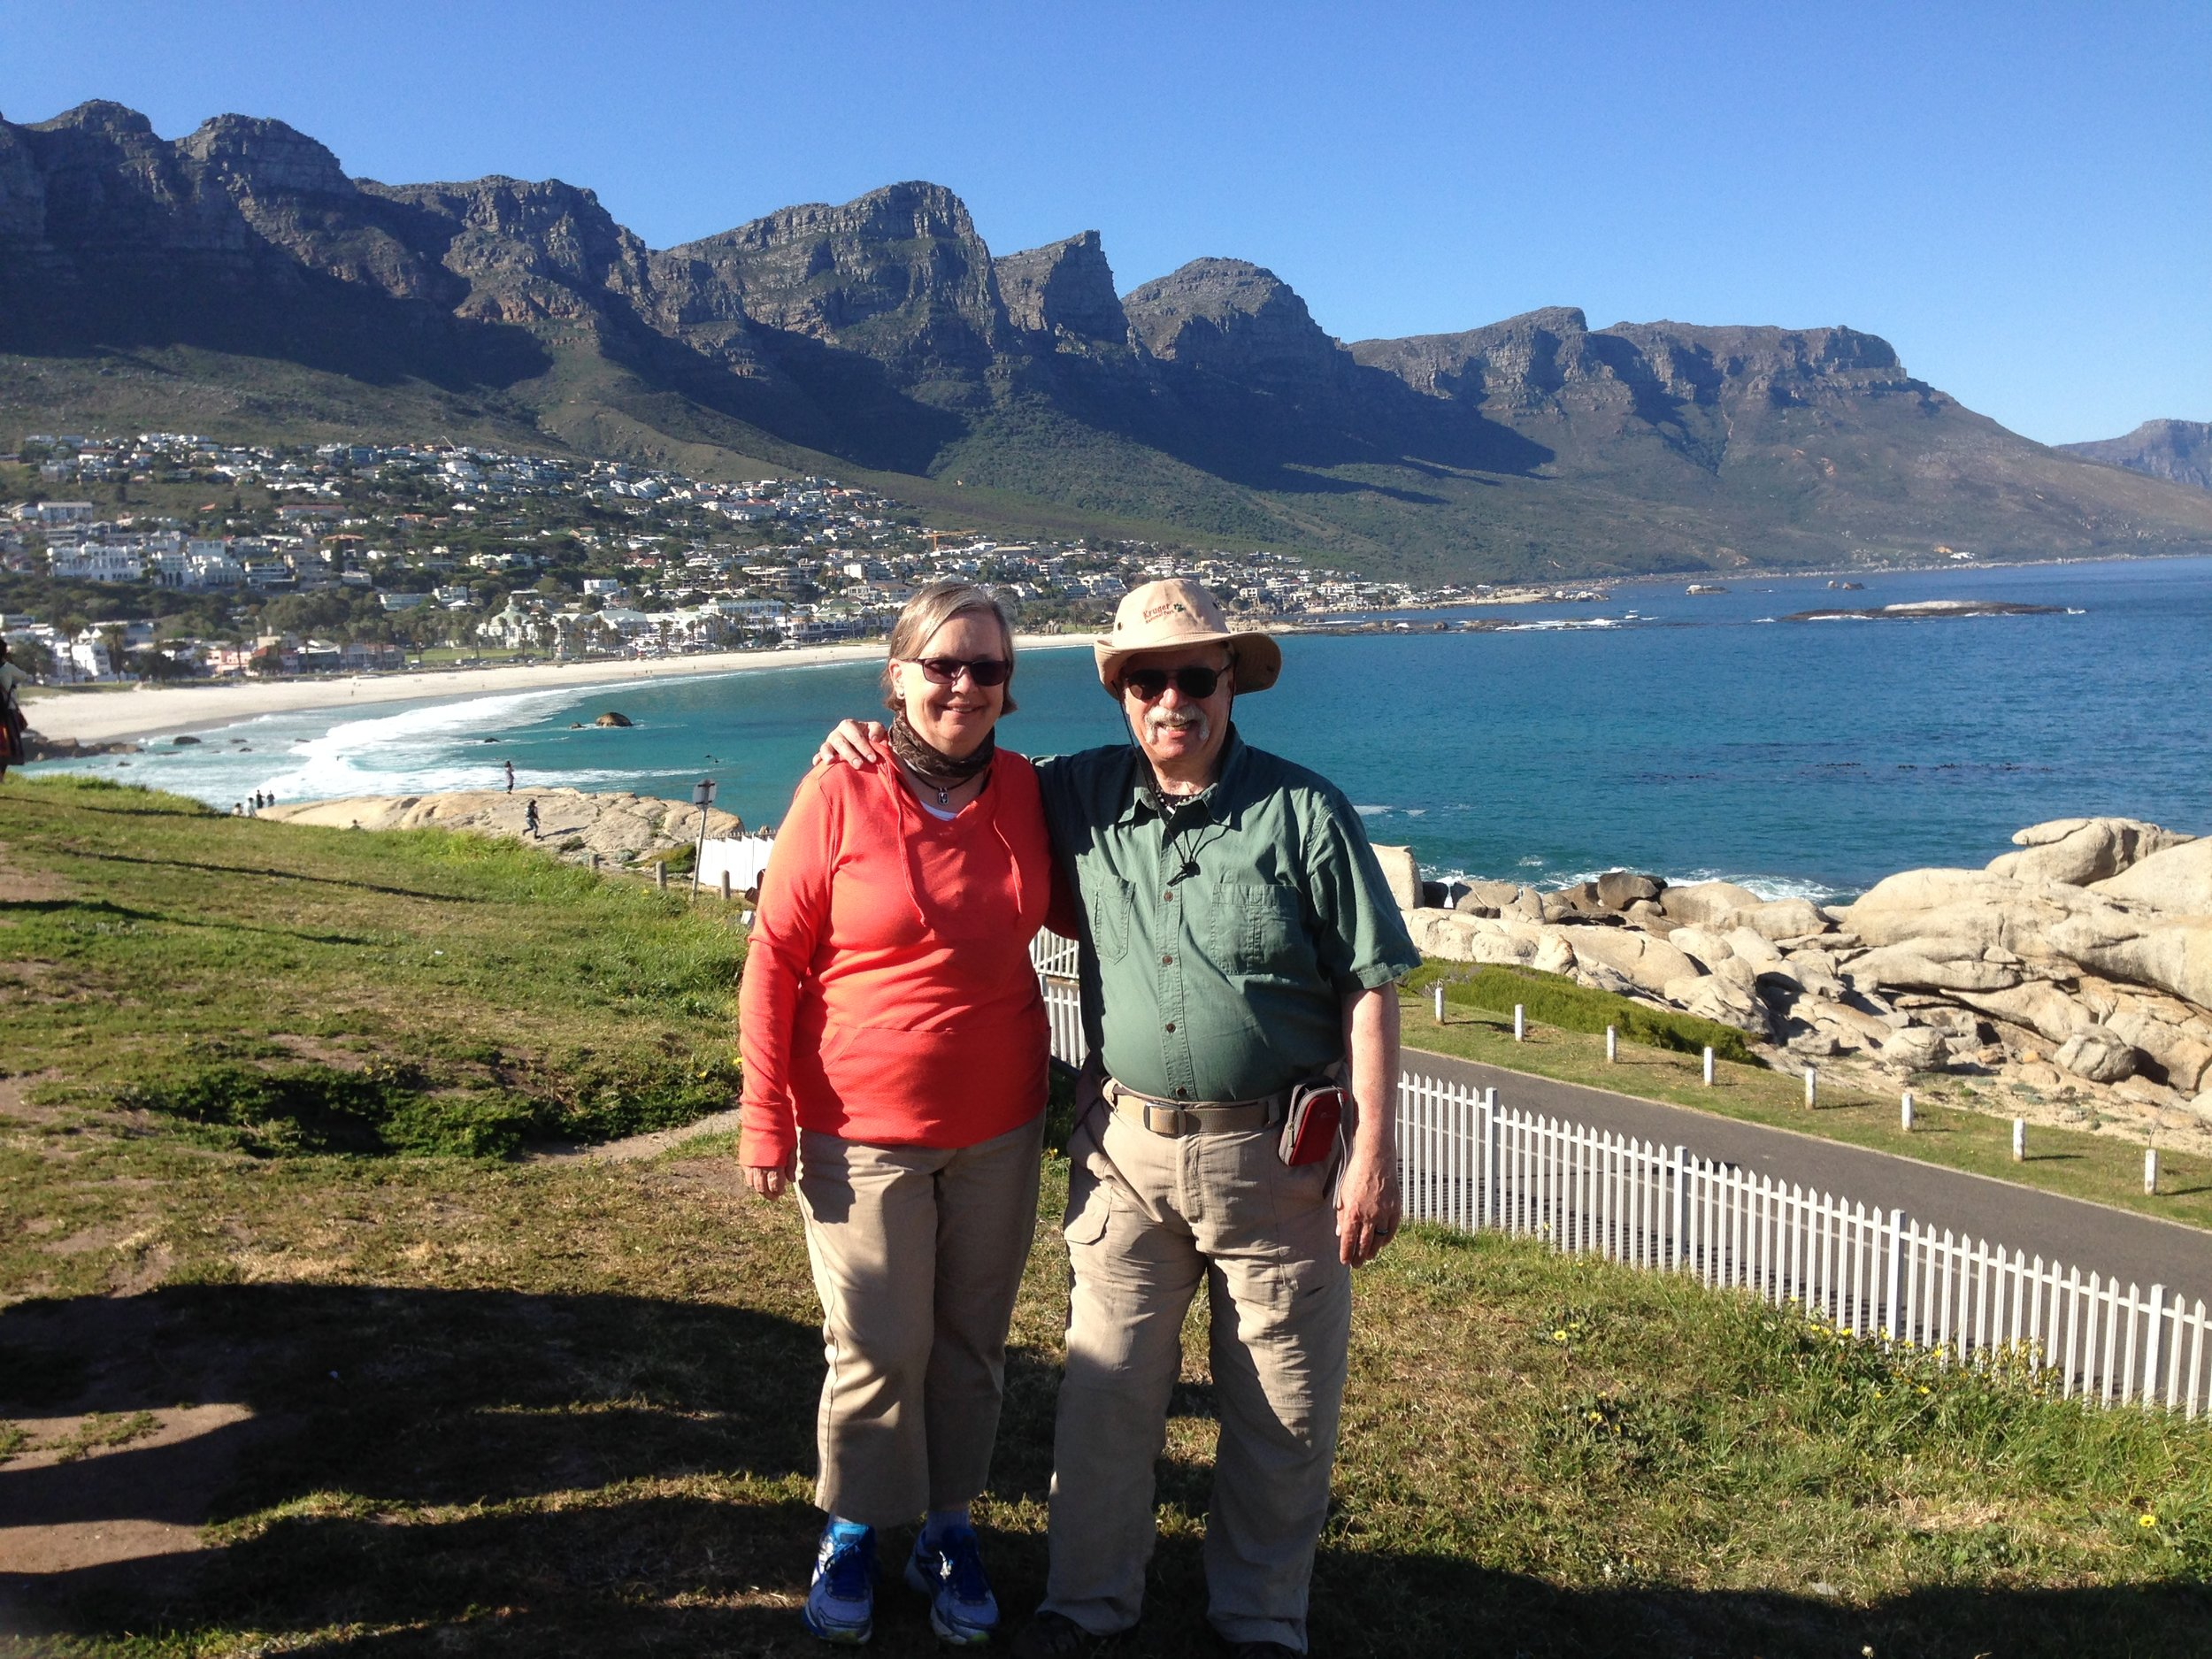 Carolyn and Steve in South Africa